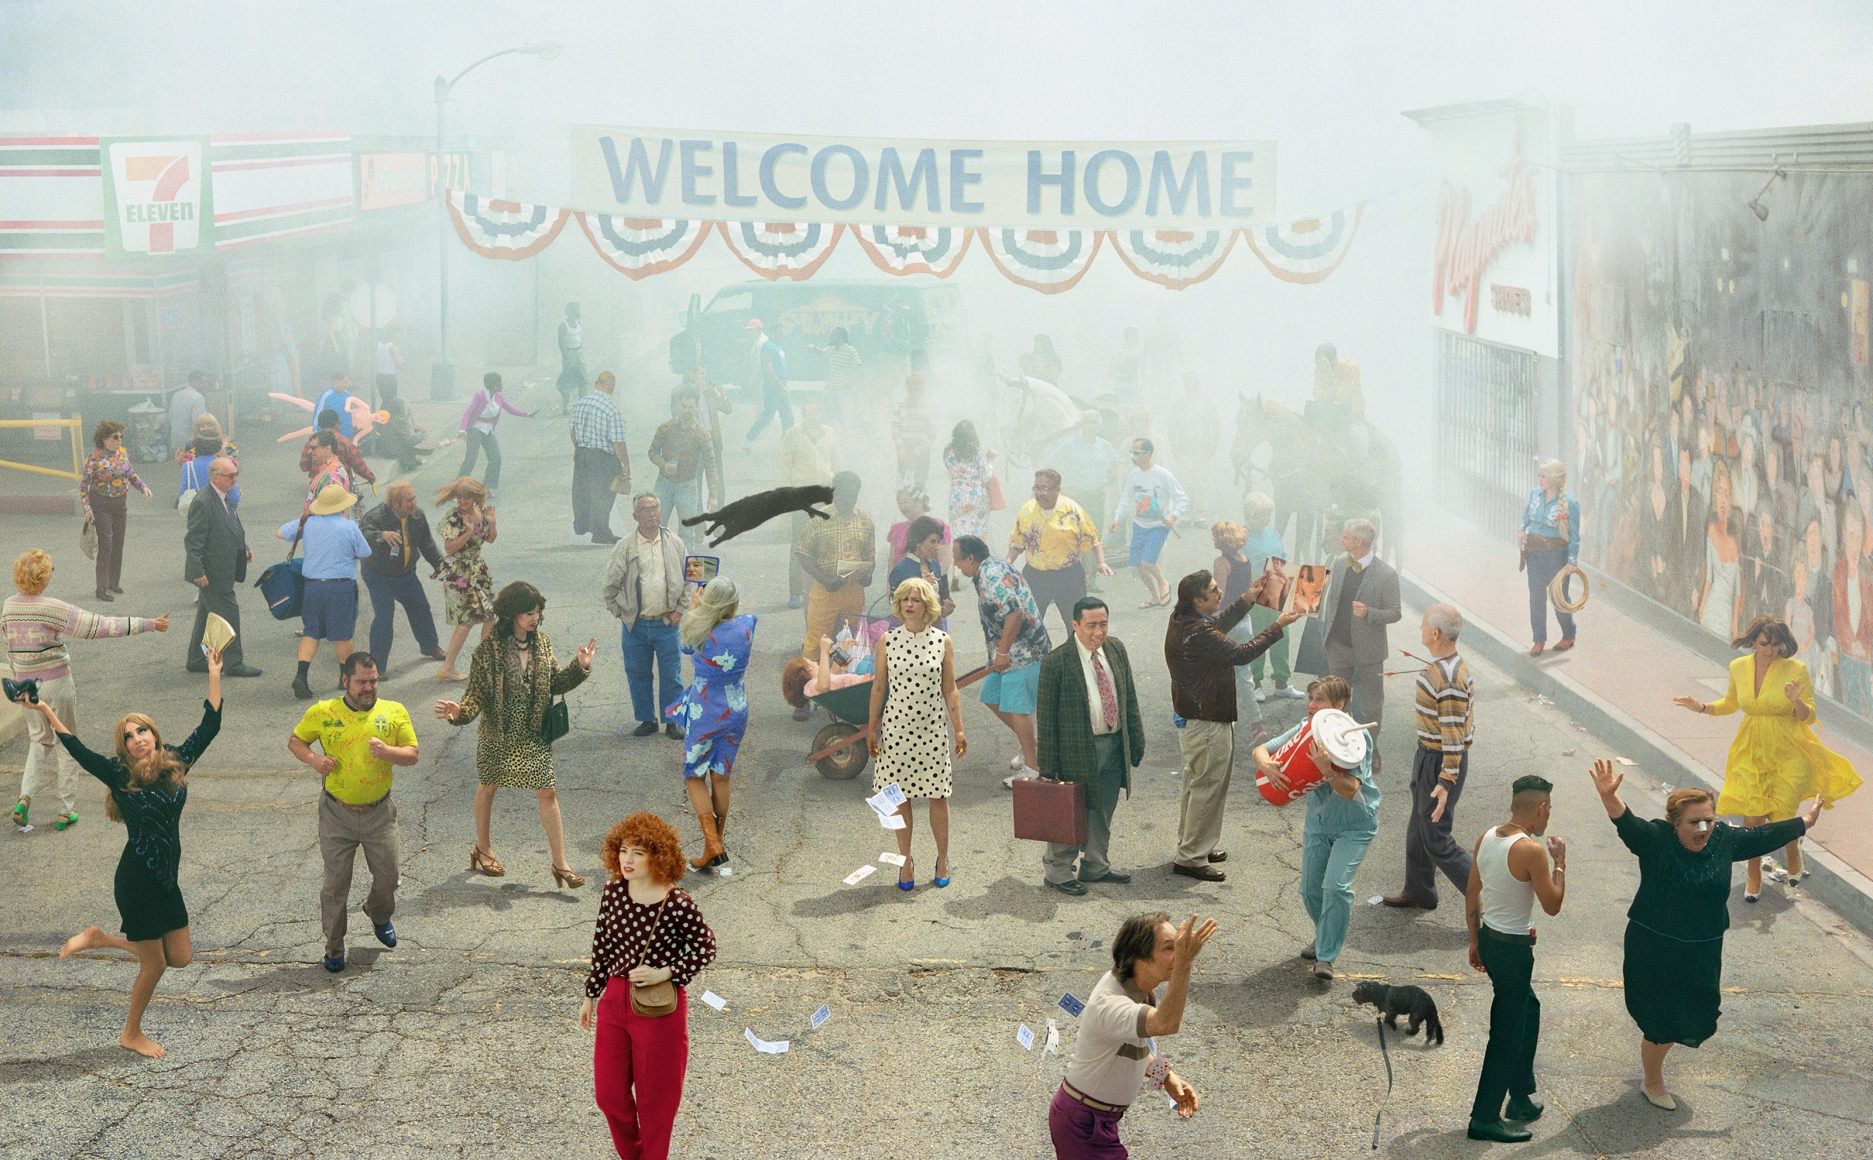 ALEX PRAGER, Welcome Home, 2019